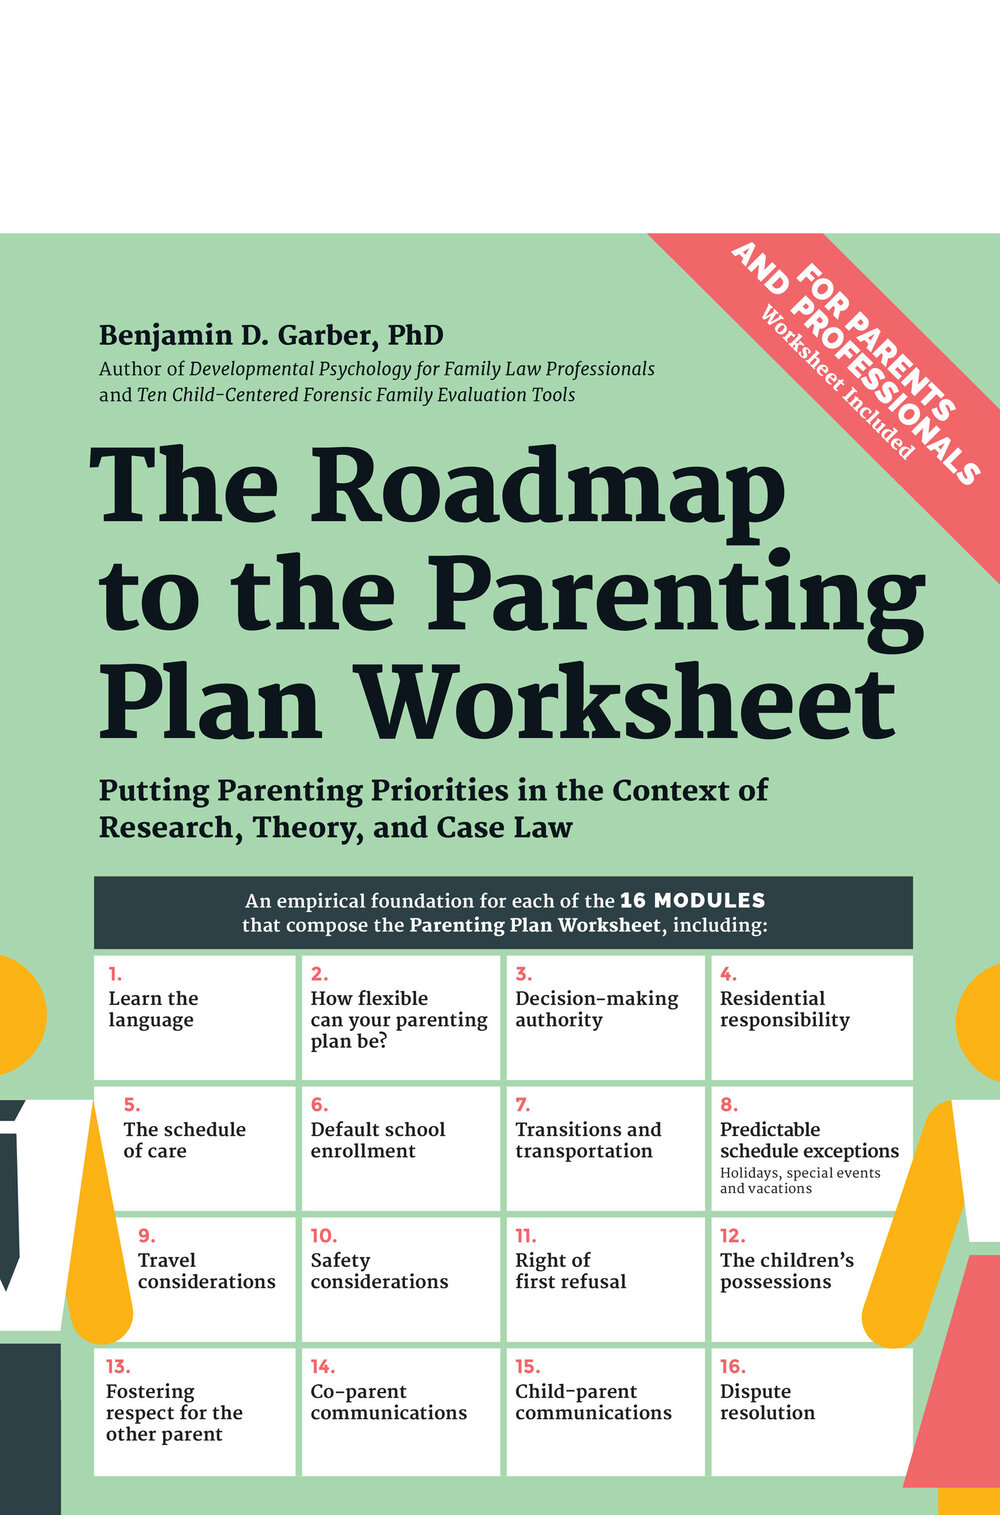 The roadmap to the parenting plan worksheet unhooked media robcynllc Images